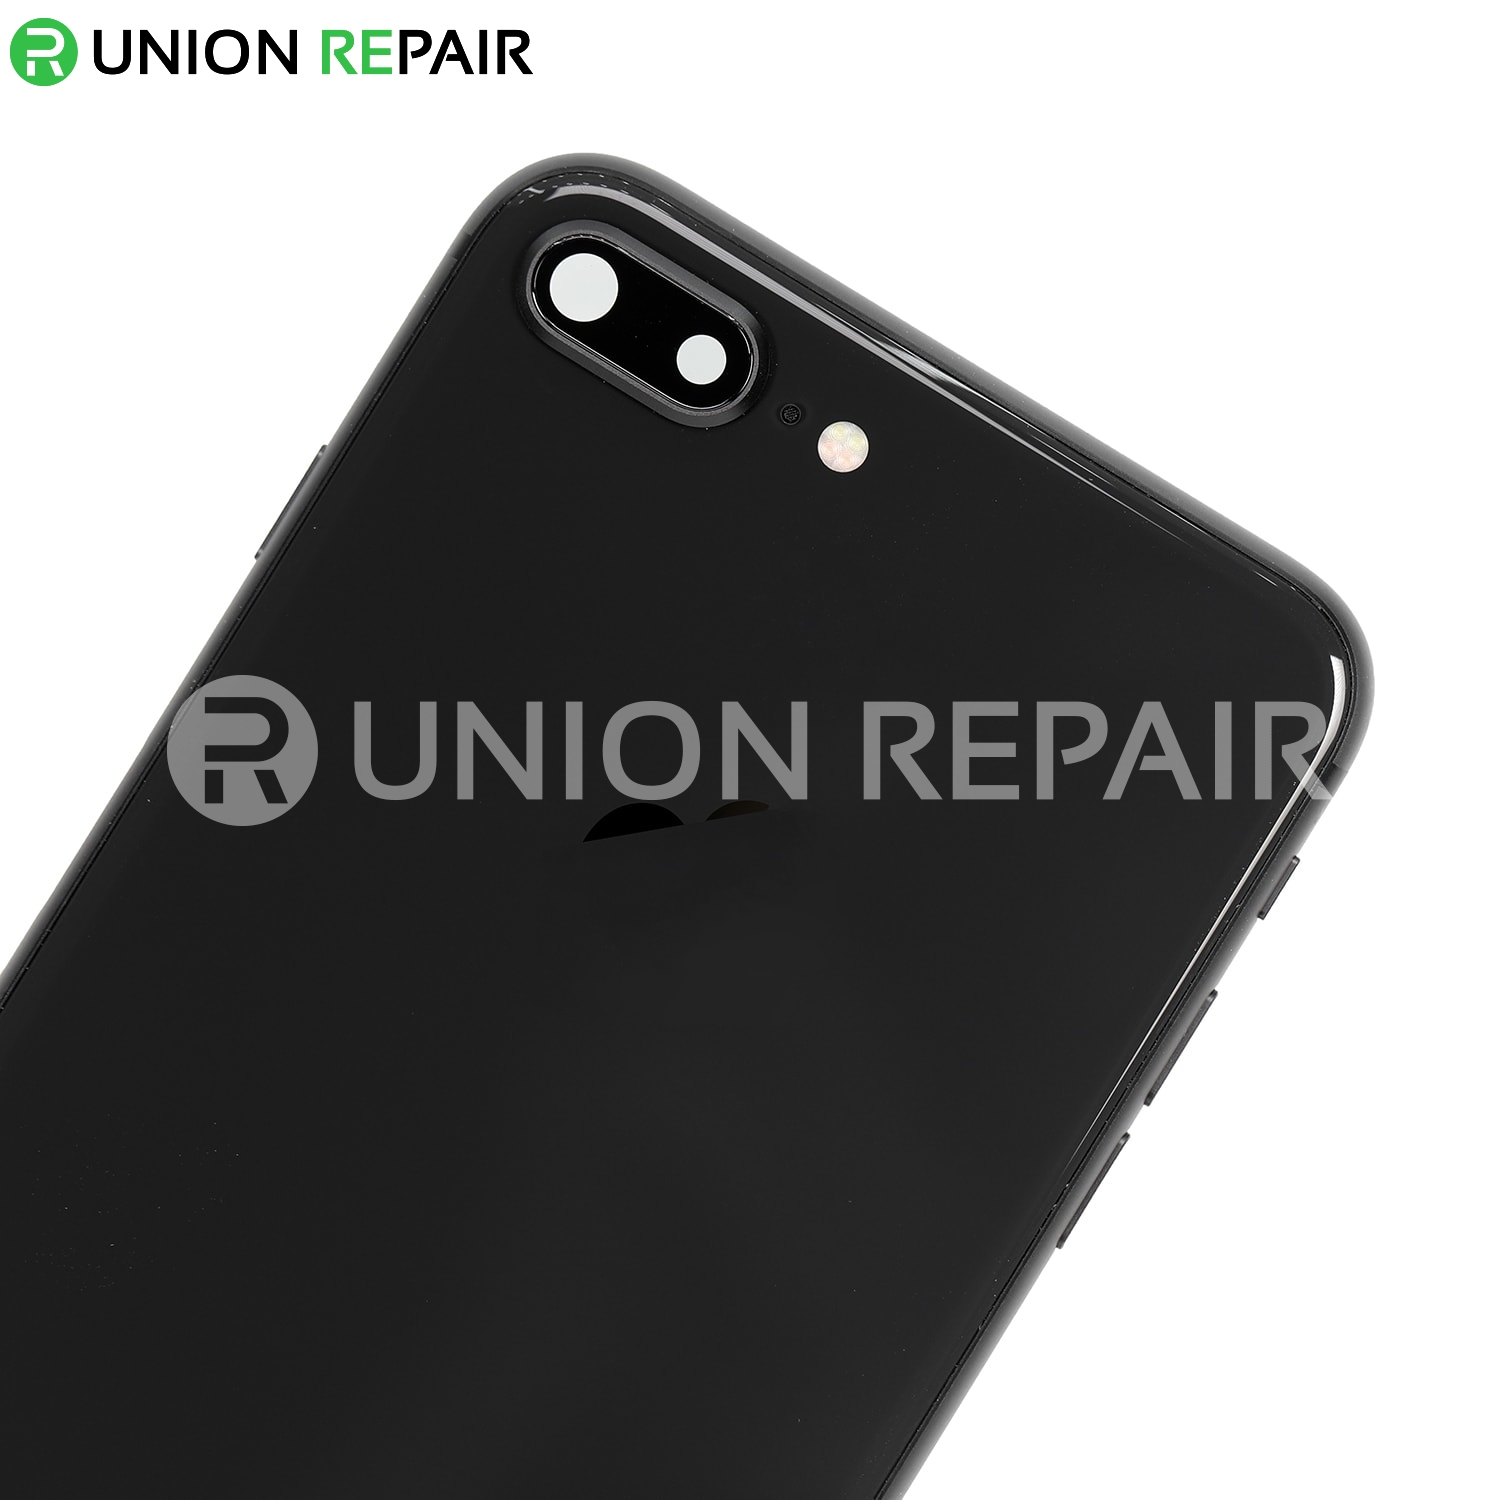 Replacement for iPhone 8 Plus Back Cover Full Assembly - Space Gray